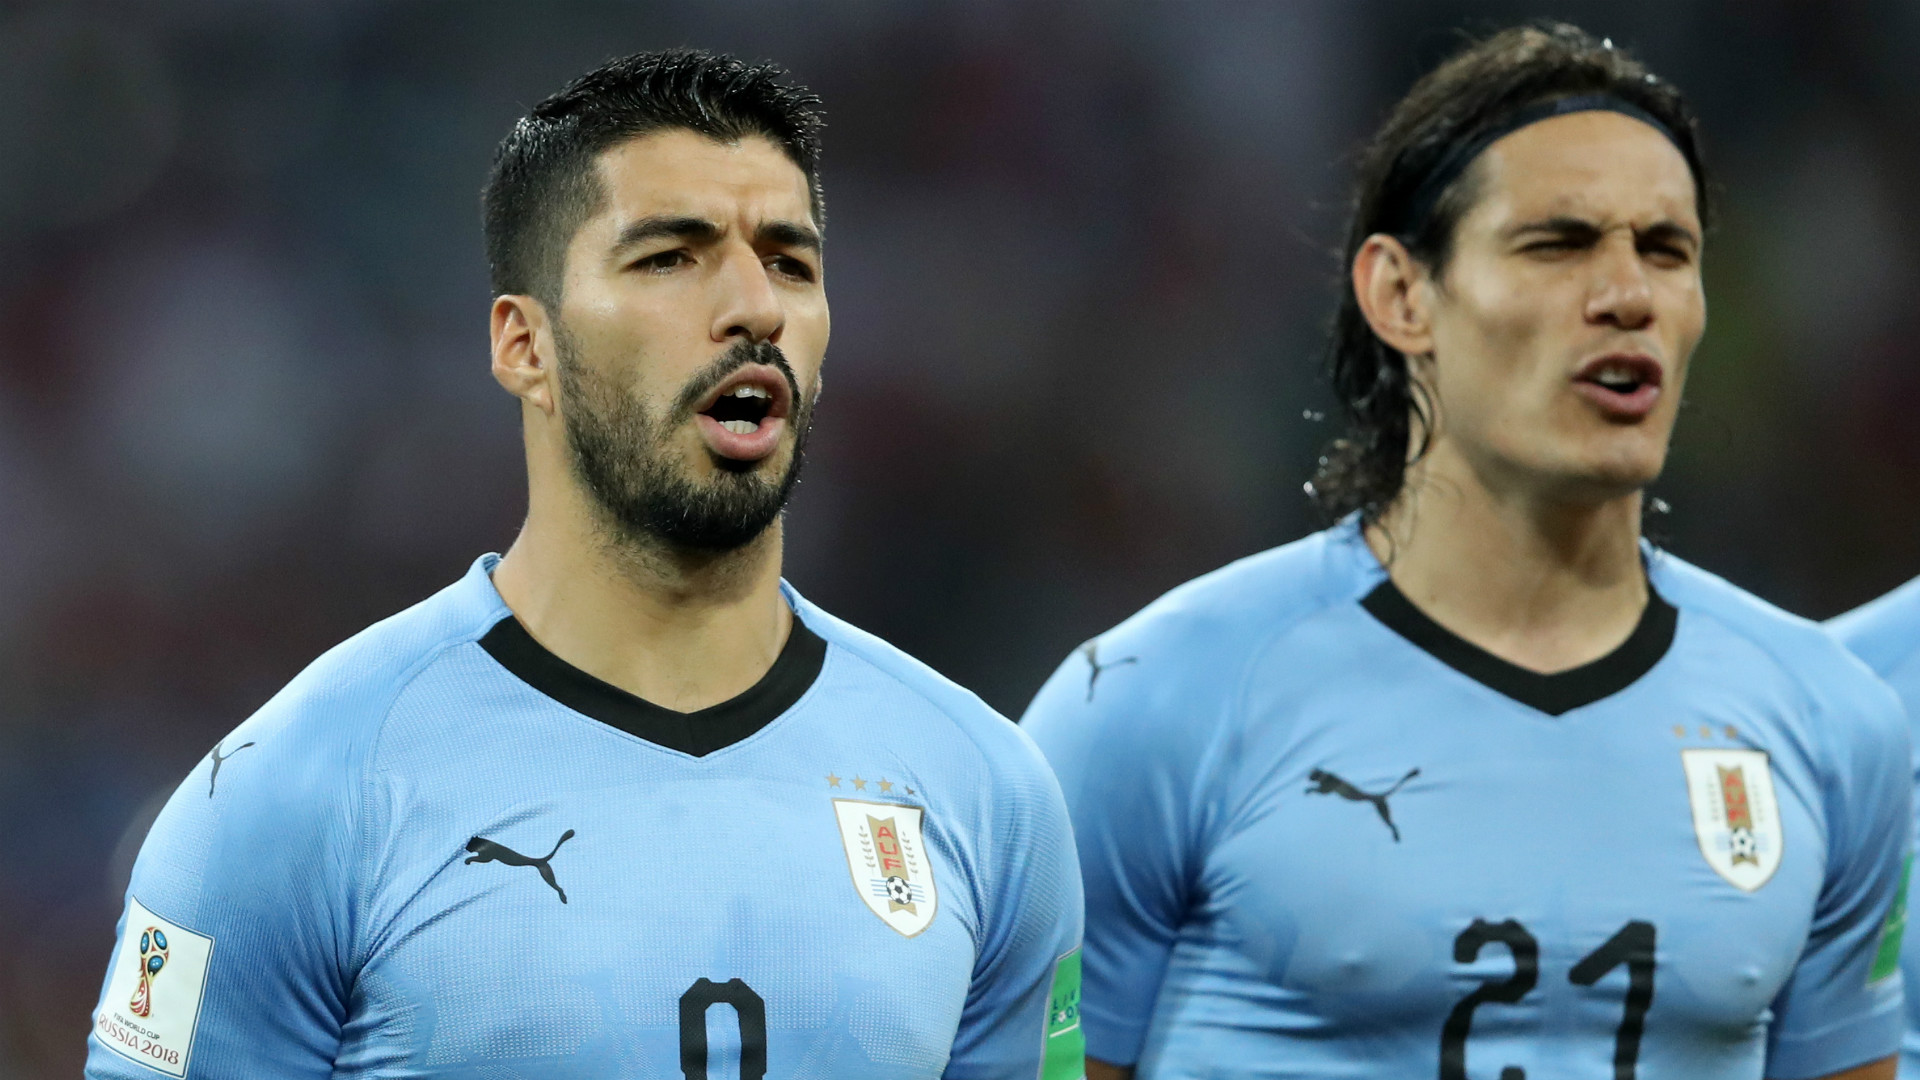 Luis Suarez Posts Heartwarming Message To Messi After Argentina Exit